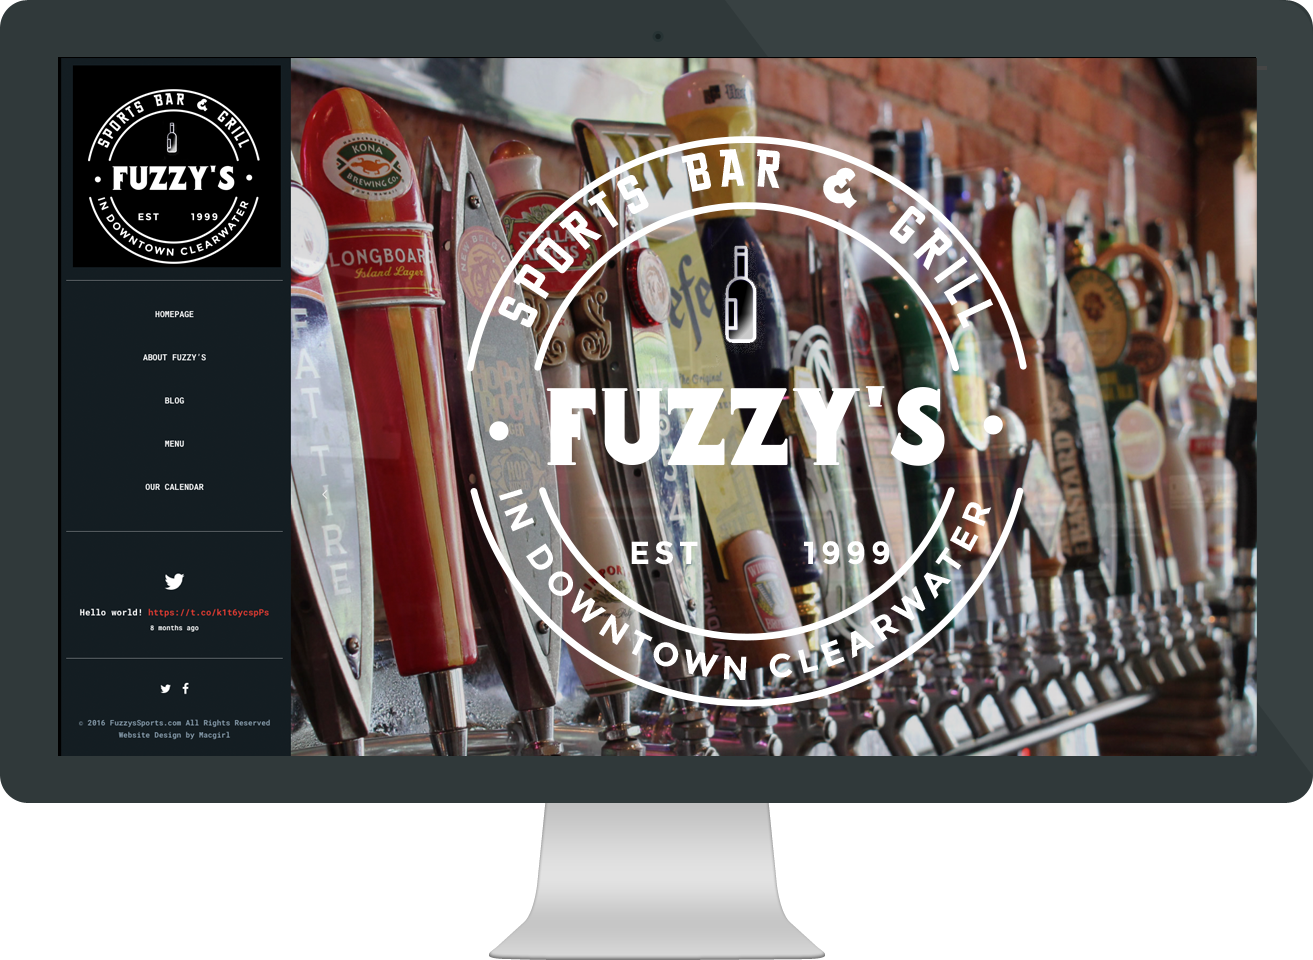 fuzzy's sports bar and grill website